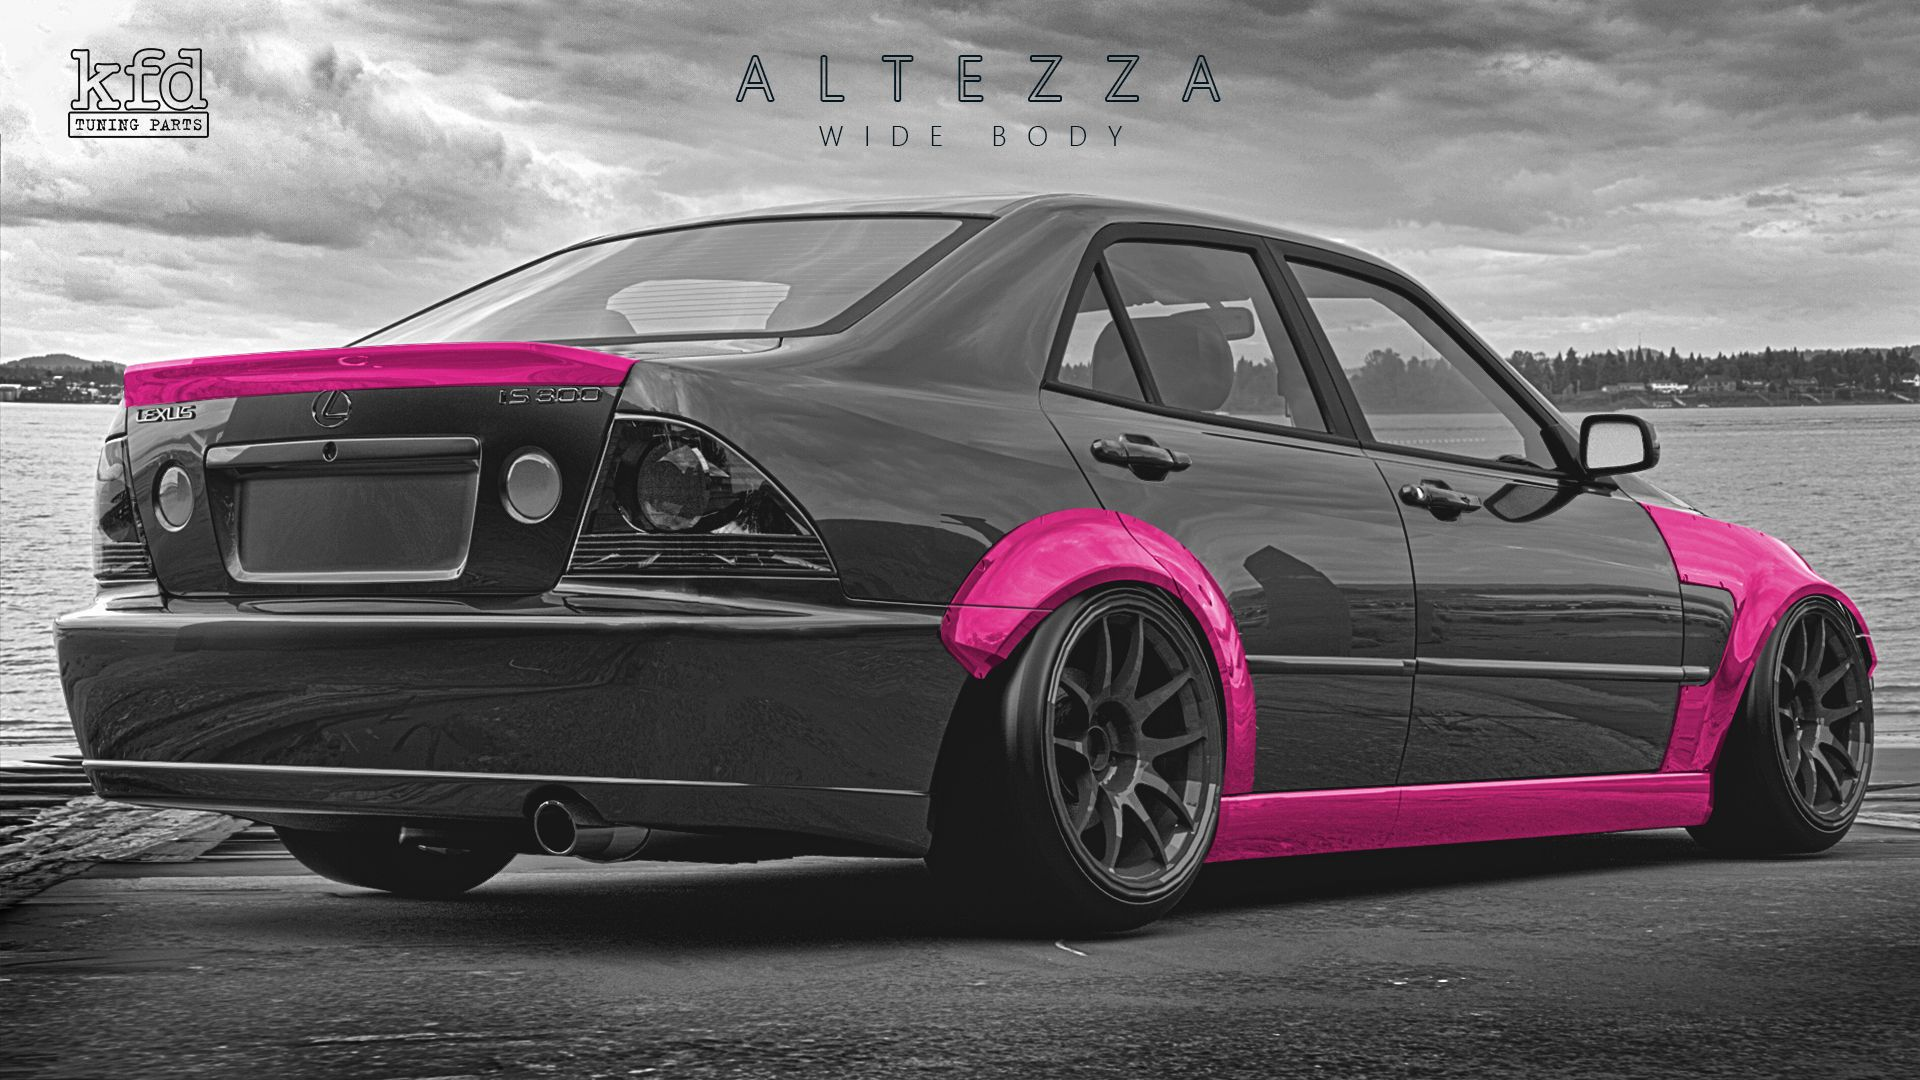 Wide Body Kit For Toyota Altezza Lexus Is200 Is300 Lexus Wide Body Kits Wide Body